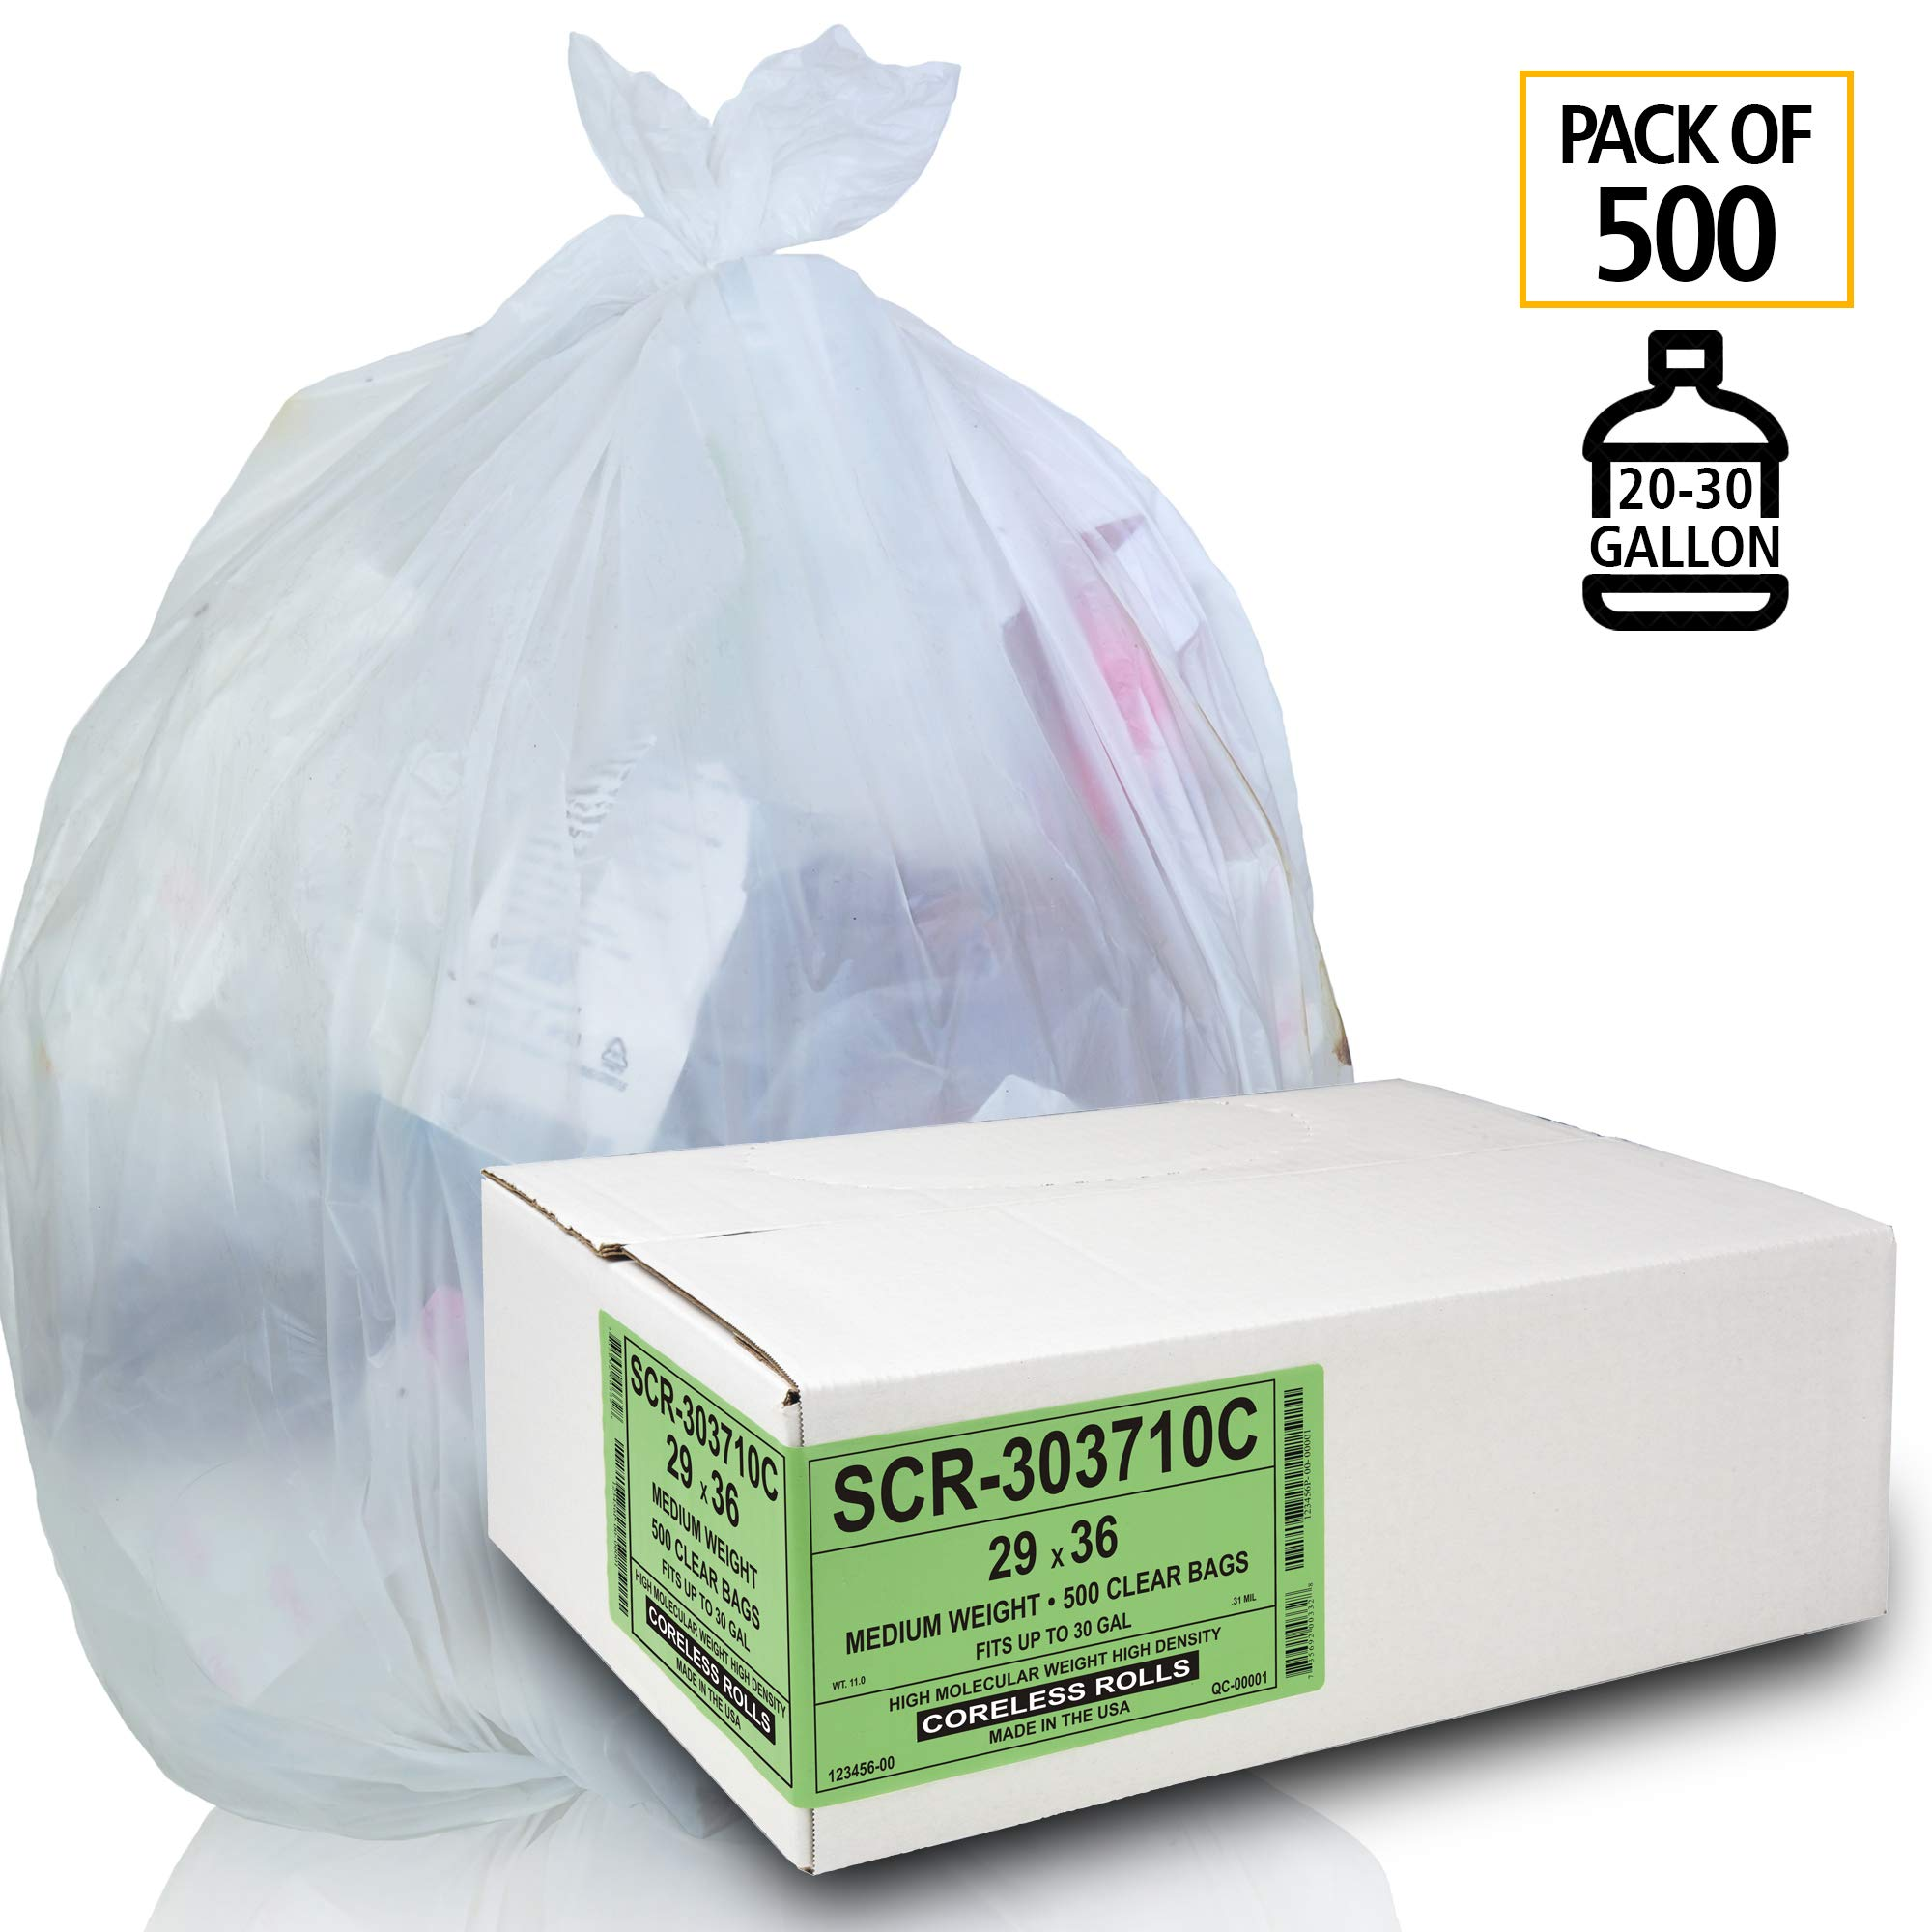 Aluf Plastics 20-30 Gallon Trash Bags - (Commercial 500 Pack) - Source Reduction Series Value High Density 10 Micron Gauge - Intended for Home, Office, Bathroom, Paper, Styrofoam by Aluf Plastics